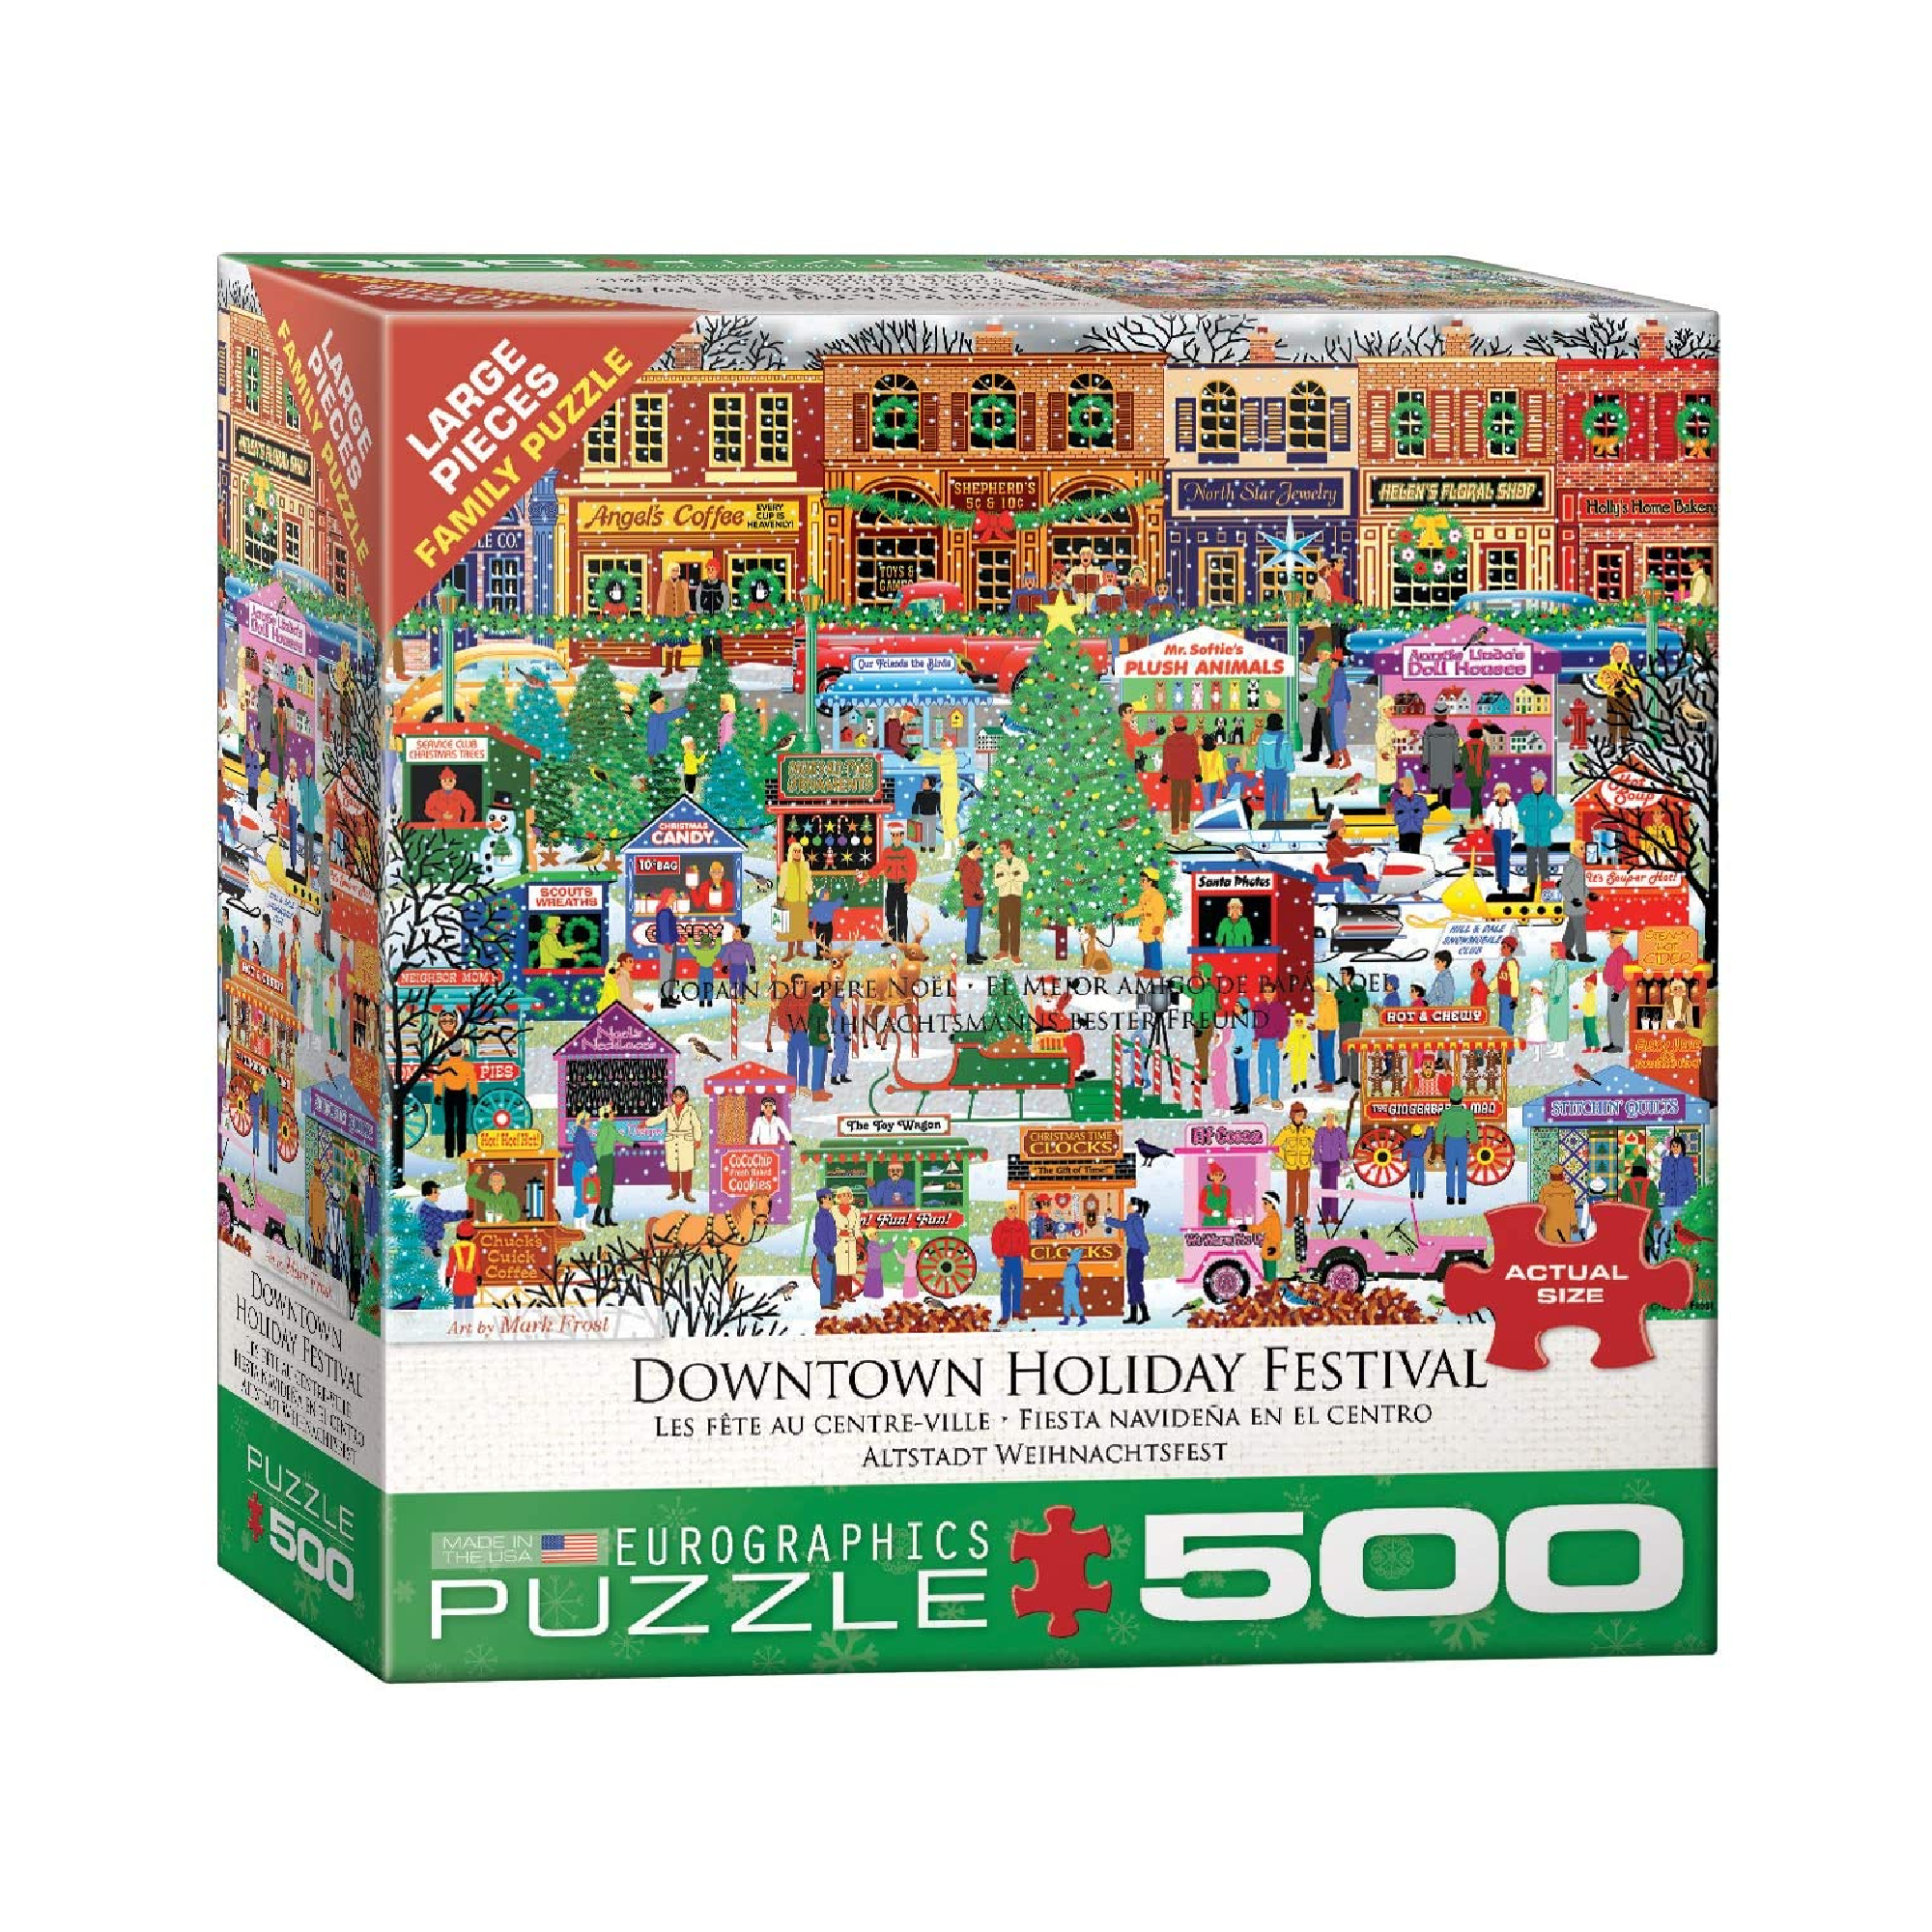 Eurographics Puzzle 500: Downtown Holiday Festival